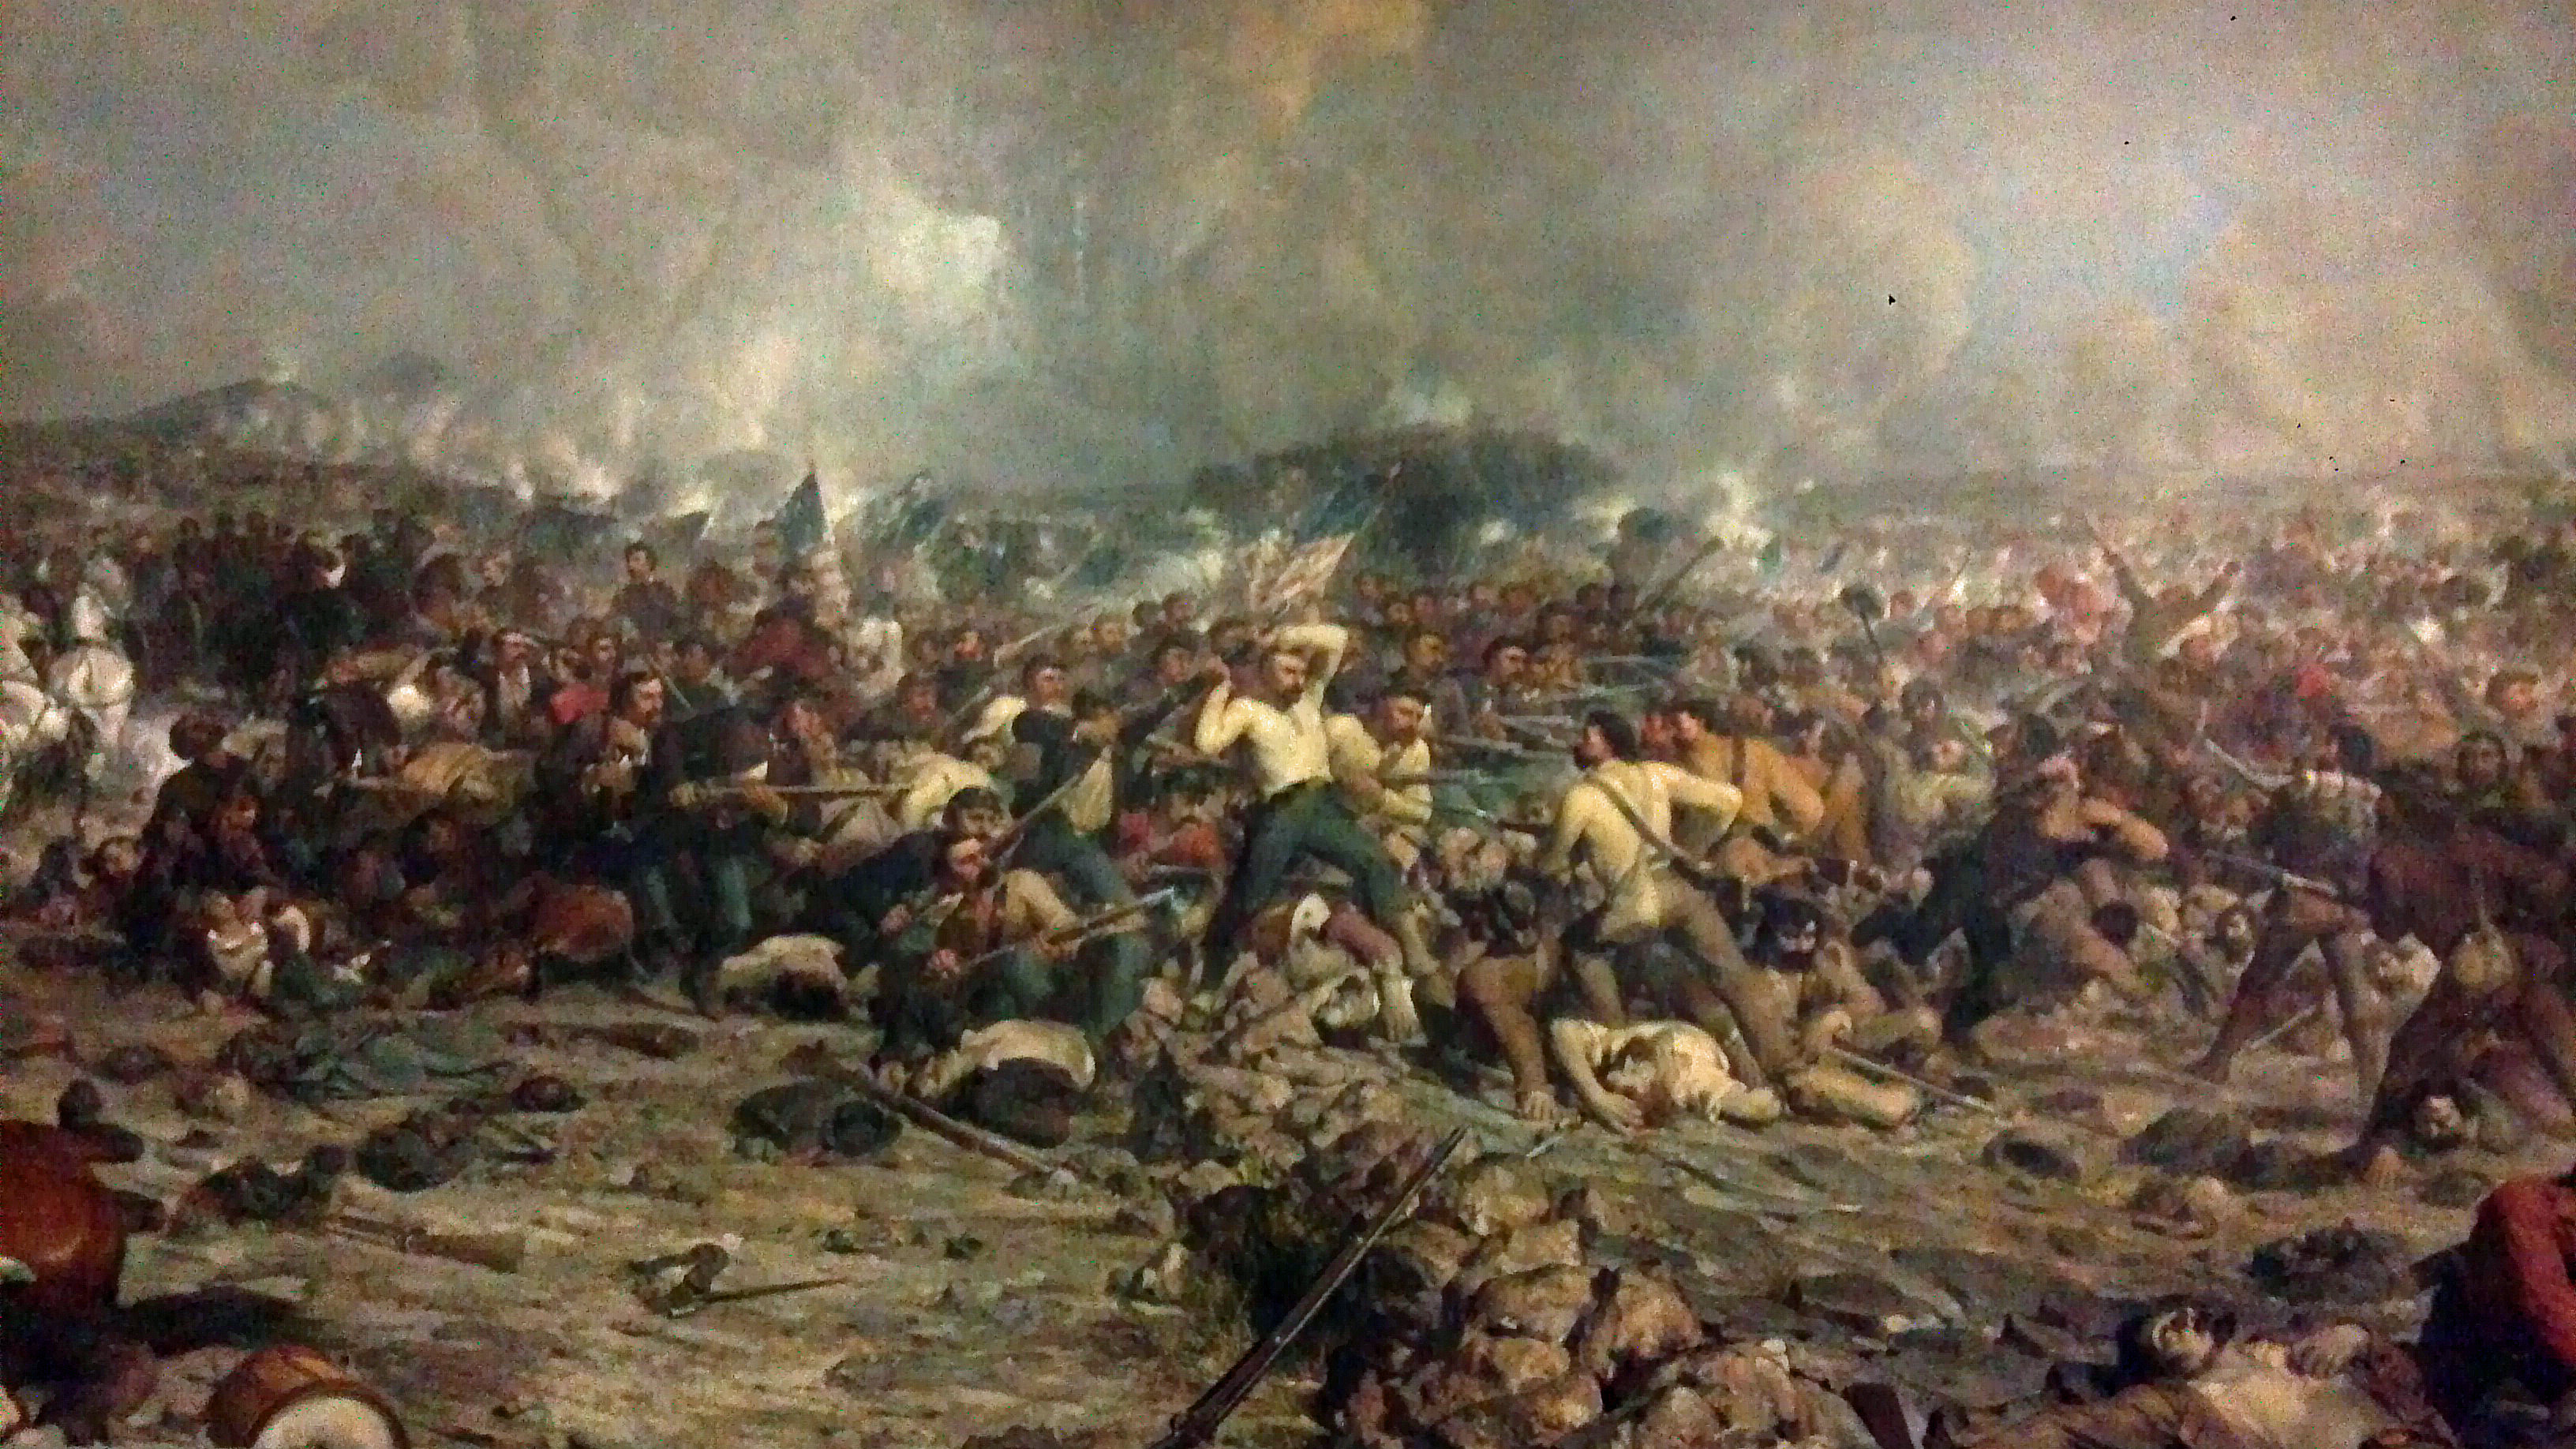 the outcome of the civil war decided at the battle of gettysburg